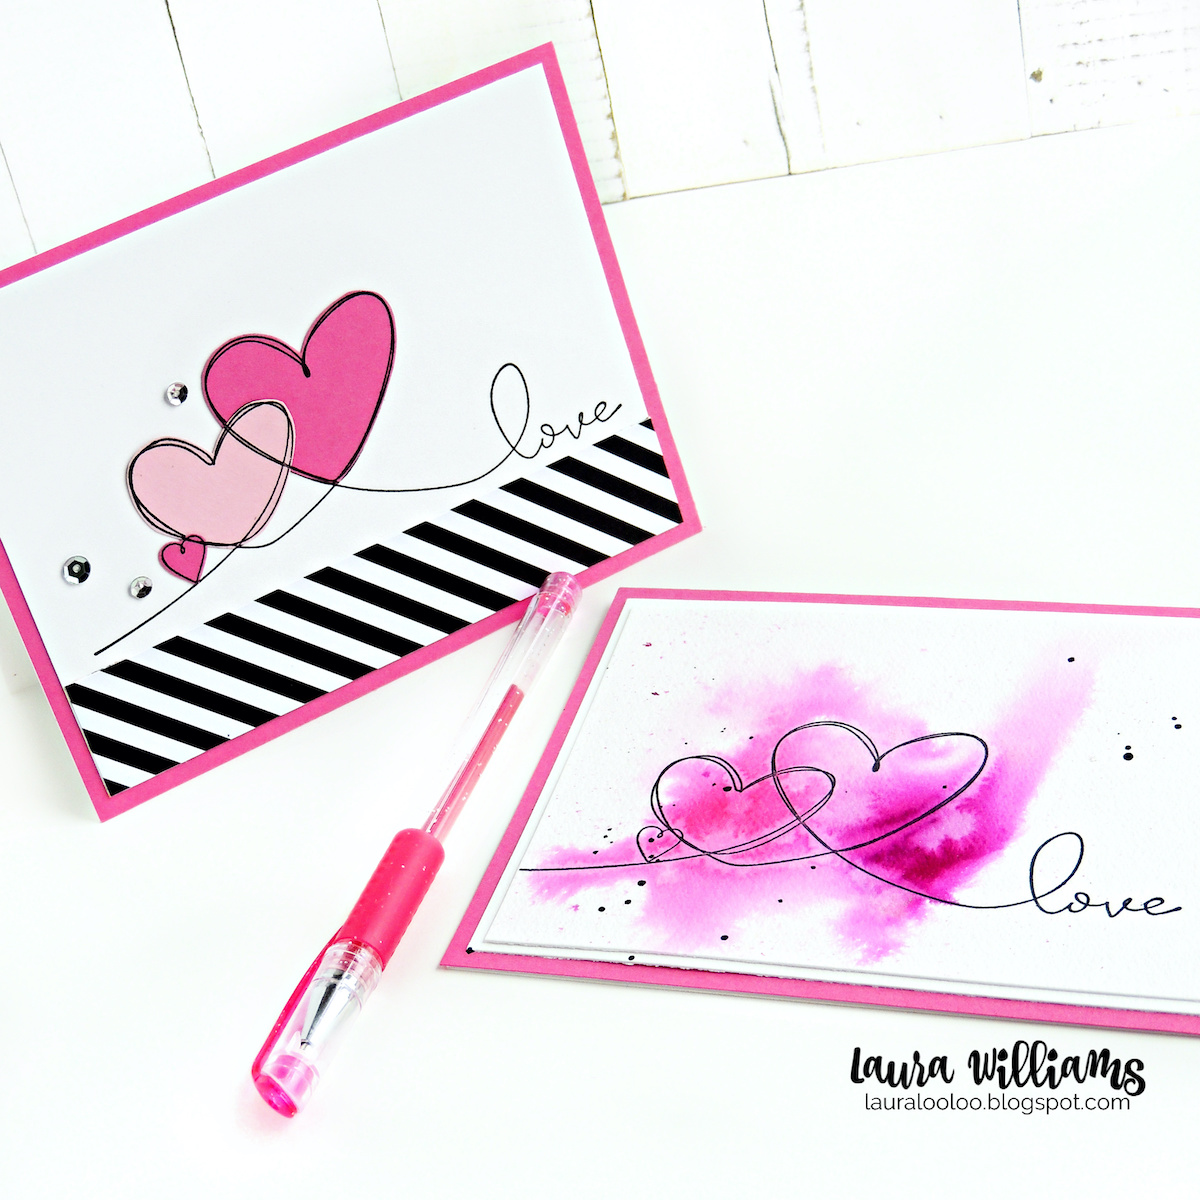 Make sweet handmade Valentine cards with the Triple Heart Love stamp from Impression Obsession. Click on over to my blog, Lauralooloo, to see ideas for this fun red rubber stamp. I'll show you how to paper-piece it, and add fun watercolor techniques to make a variety of lovely Valentine cardmaking ideas with this one stamp.